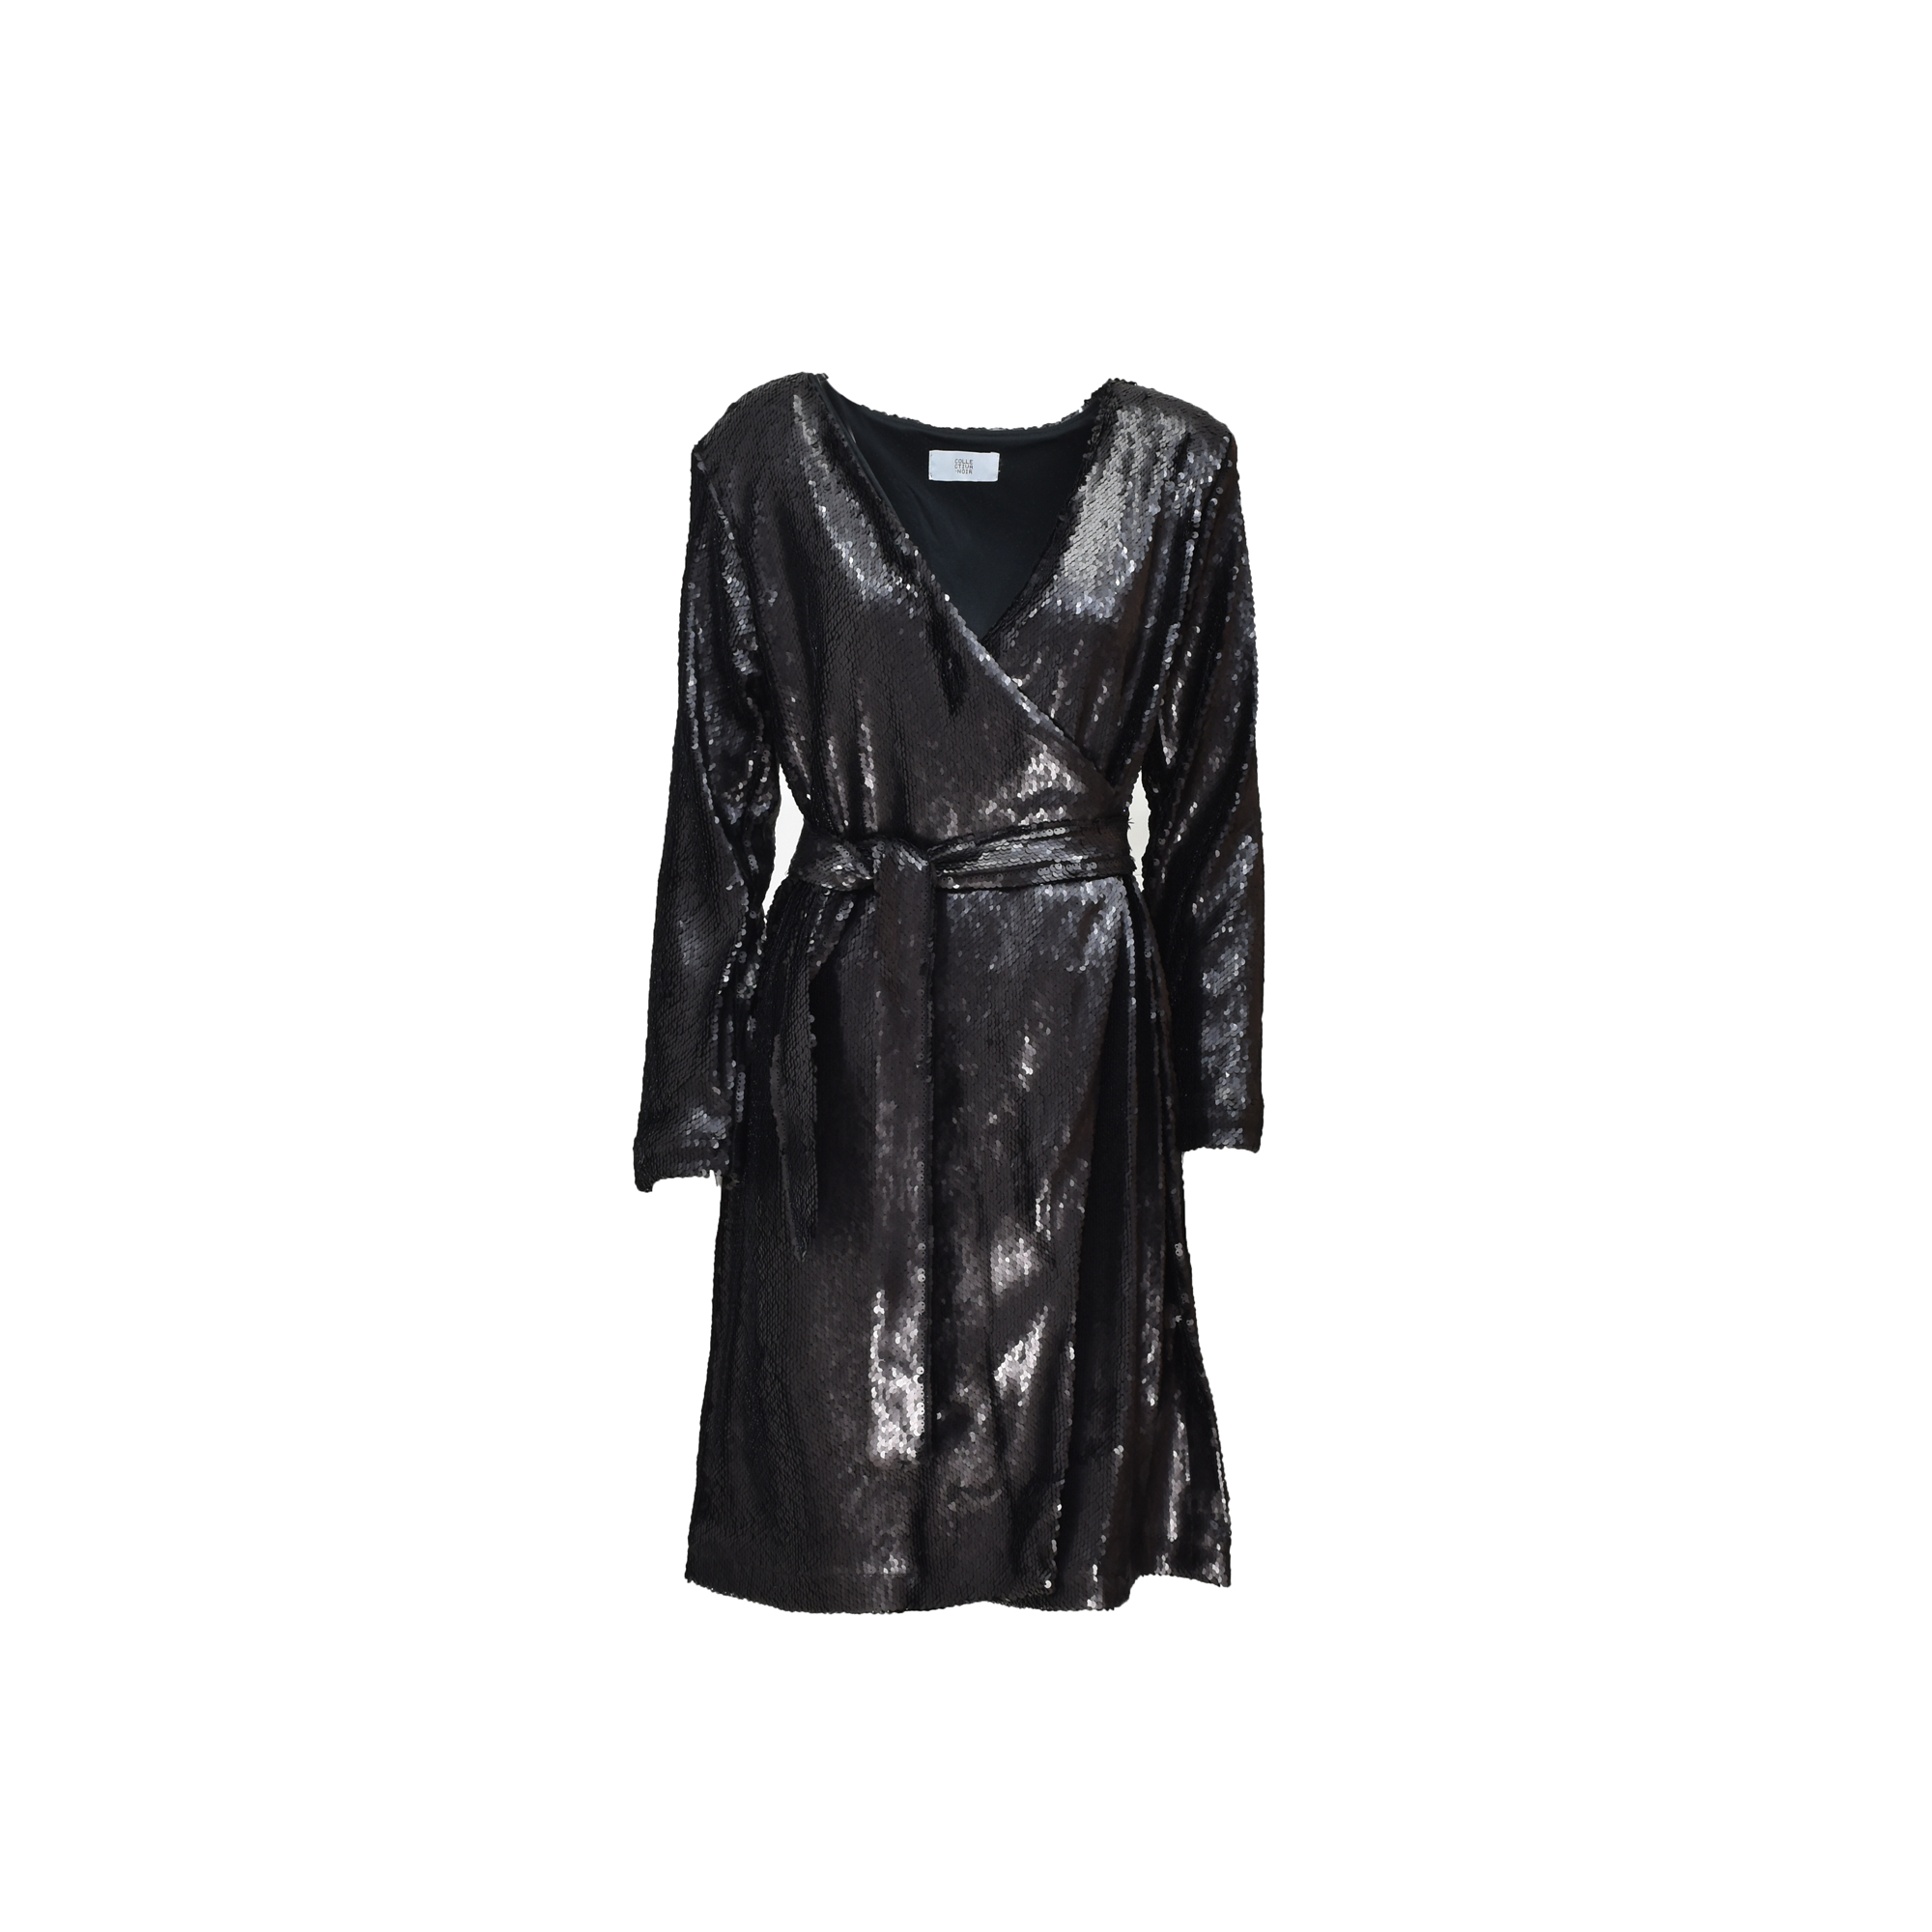 COLLECTIVA NOIR AMOUR DRESS - CNB4WB89SQ